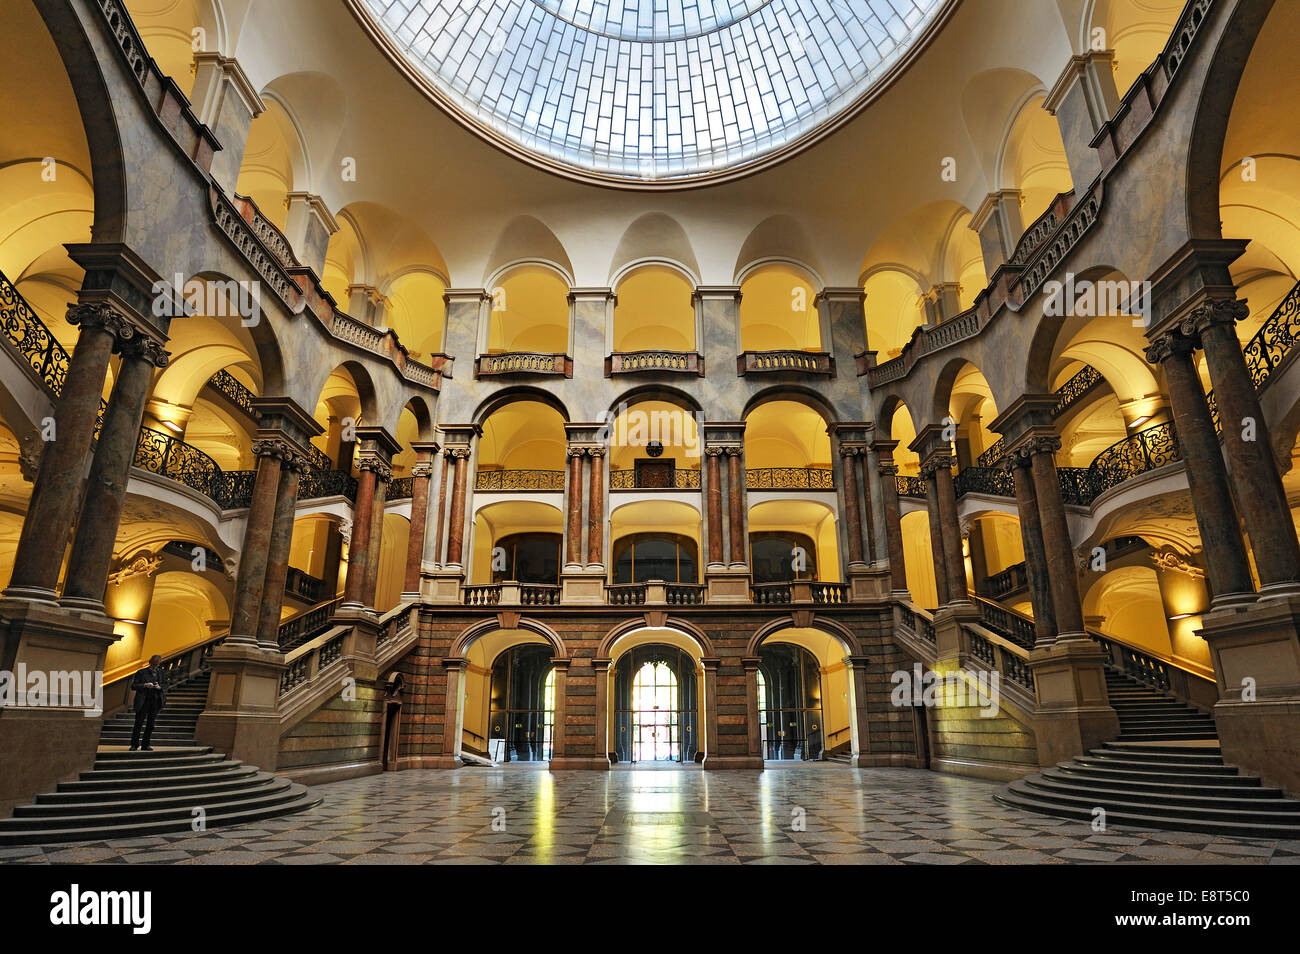 Entrance with atrium and staircase, Palace of Justice, Munich, Bavaria, Germany - Stock Image